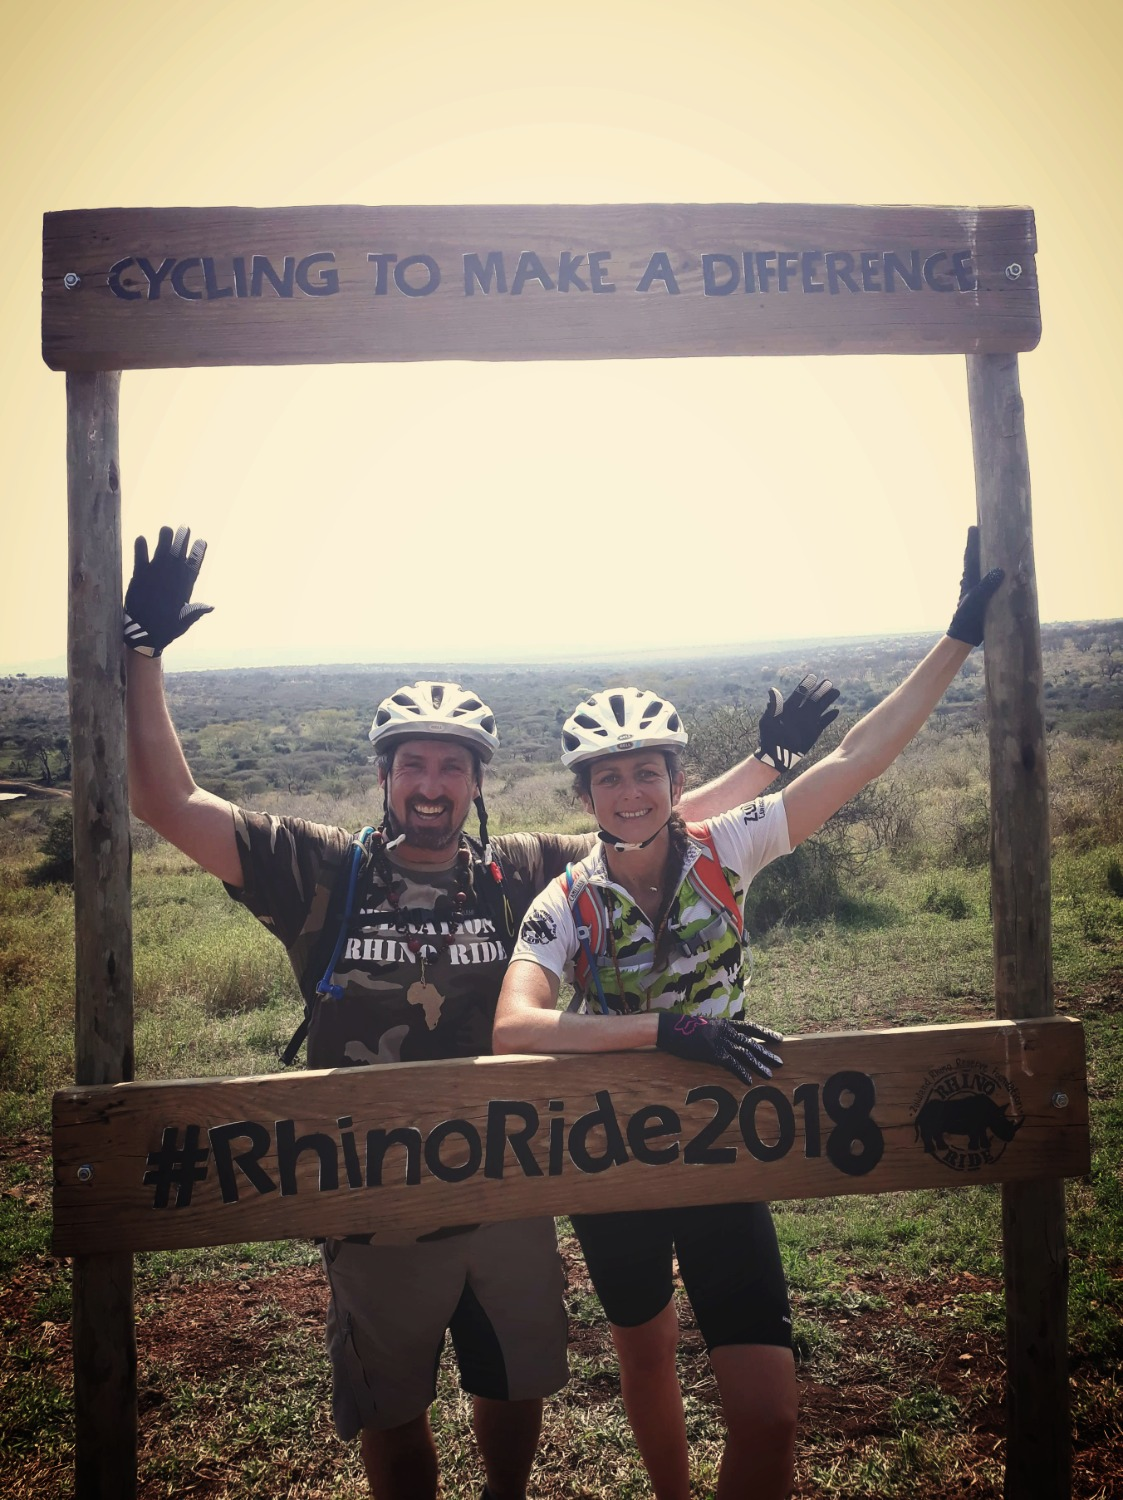 the 'Flying Kiwis' Rhino Ride 2018